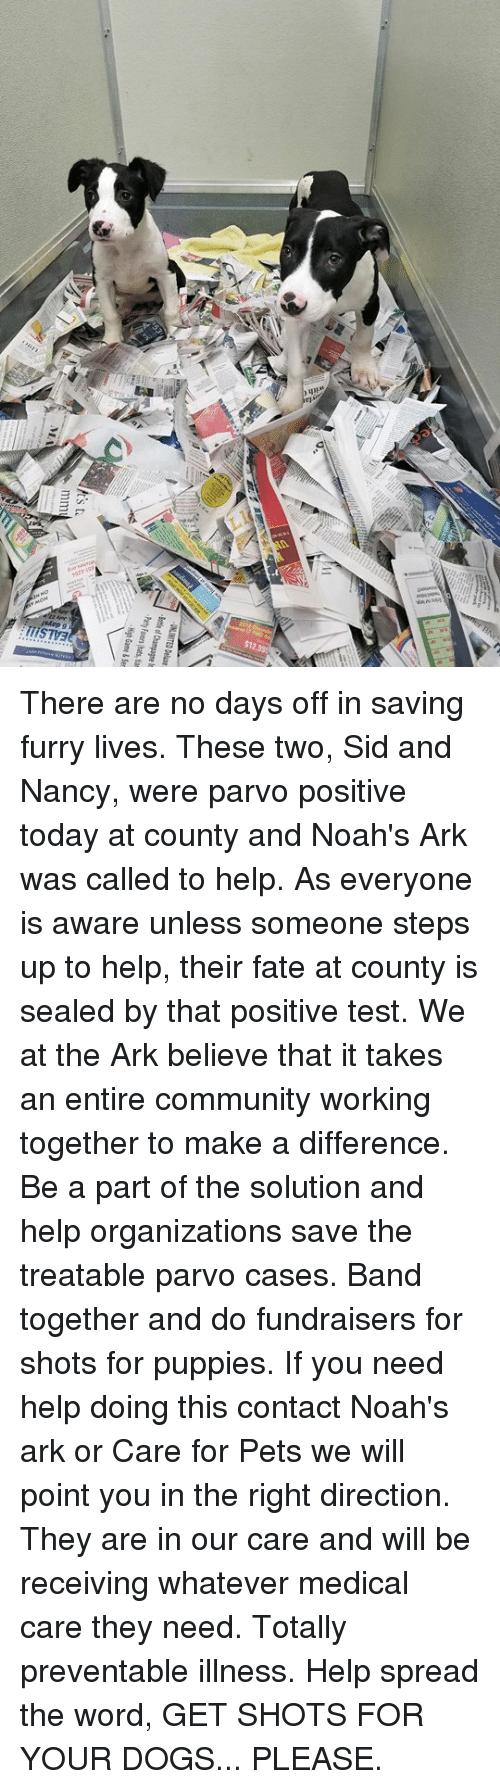 Community, Dogs, and Memes: There are no days off in saving furry lives. These two,  Sid and Nancy, were parvo positive today at county and Noah's Ark was called to help. As everyone is aware unless someone steps up to help,  their fate at county is sealed by that positive test. We at the Ark believe that it takes an entire community working together to make a difference.  Be a part of the solution and help organizations save the treatable parvo cases. Band together and do fundraisers for shots for puppies. If you need help doing this contact Noah's ark  or Care for Pets we will point you in the right direction.  They are in our care and will be receiving whatever medical care they need. Totally preventable illness. Help spread the word,  GET SHOTS FOR YOUR DOGS...  PLEASE.